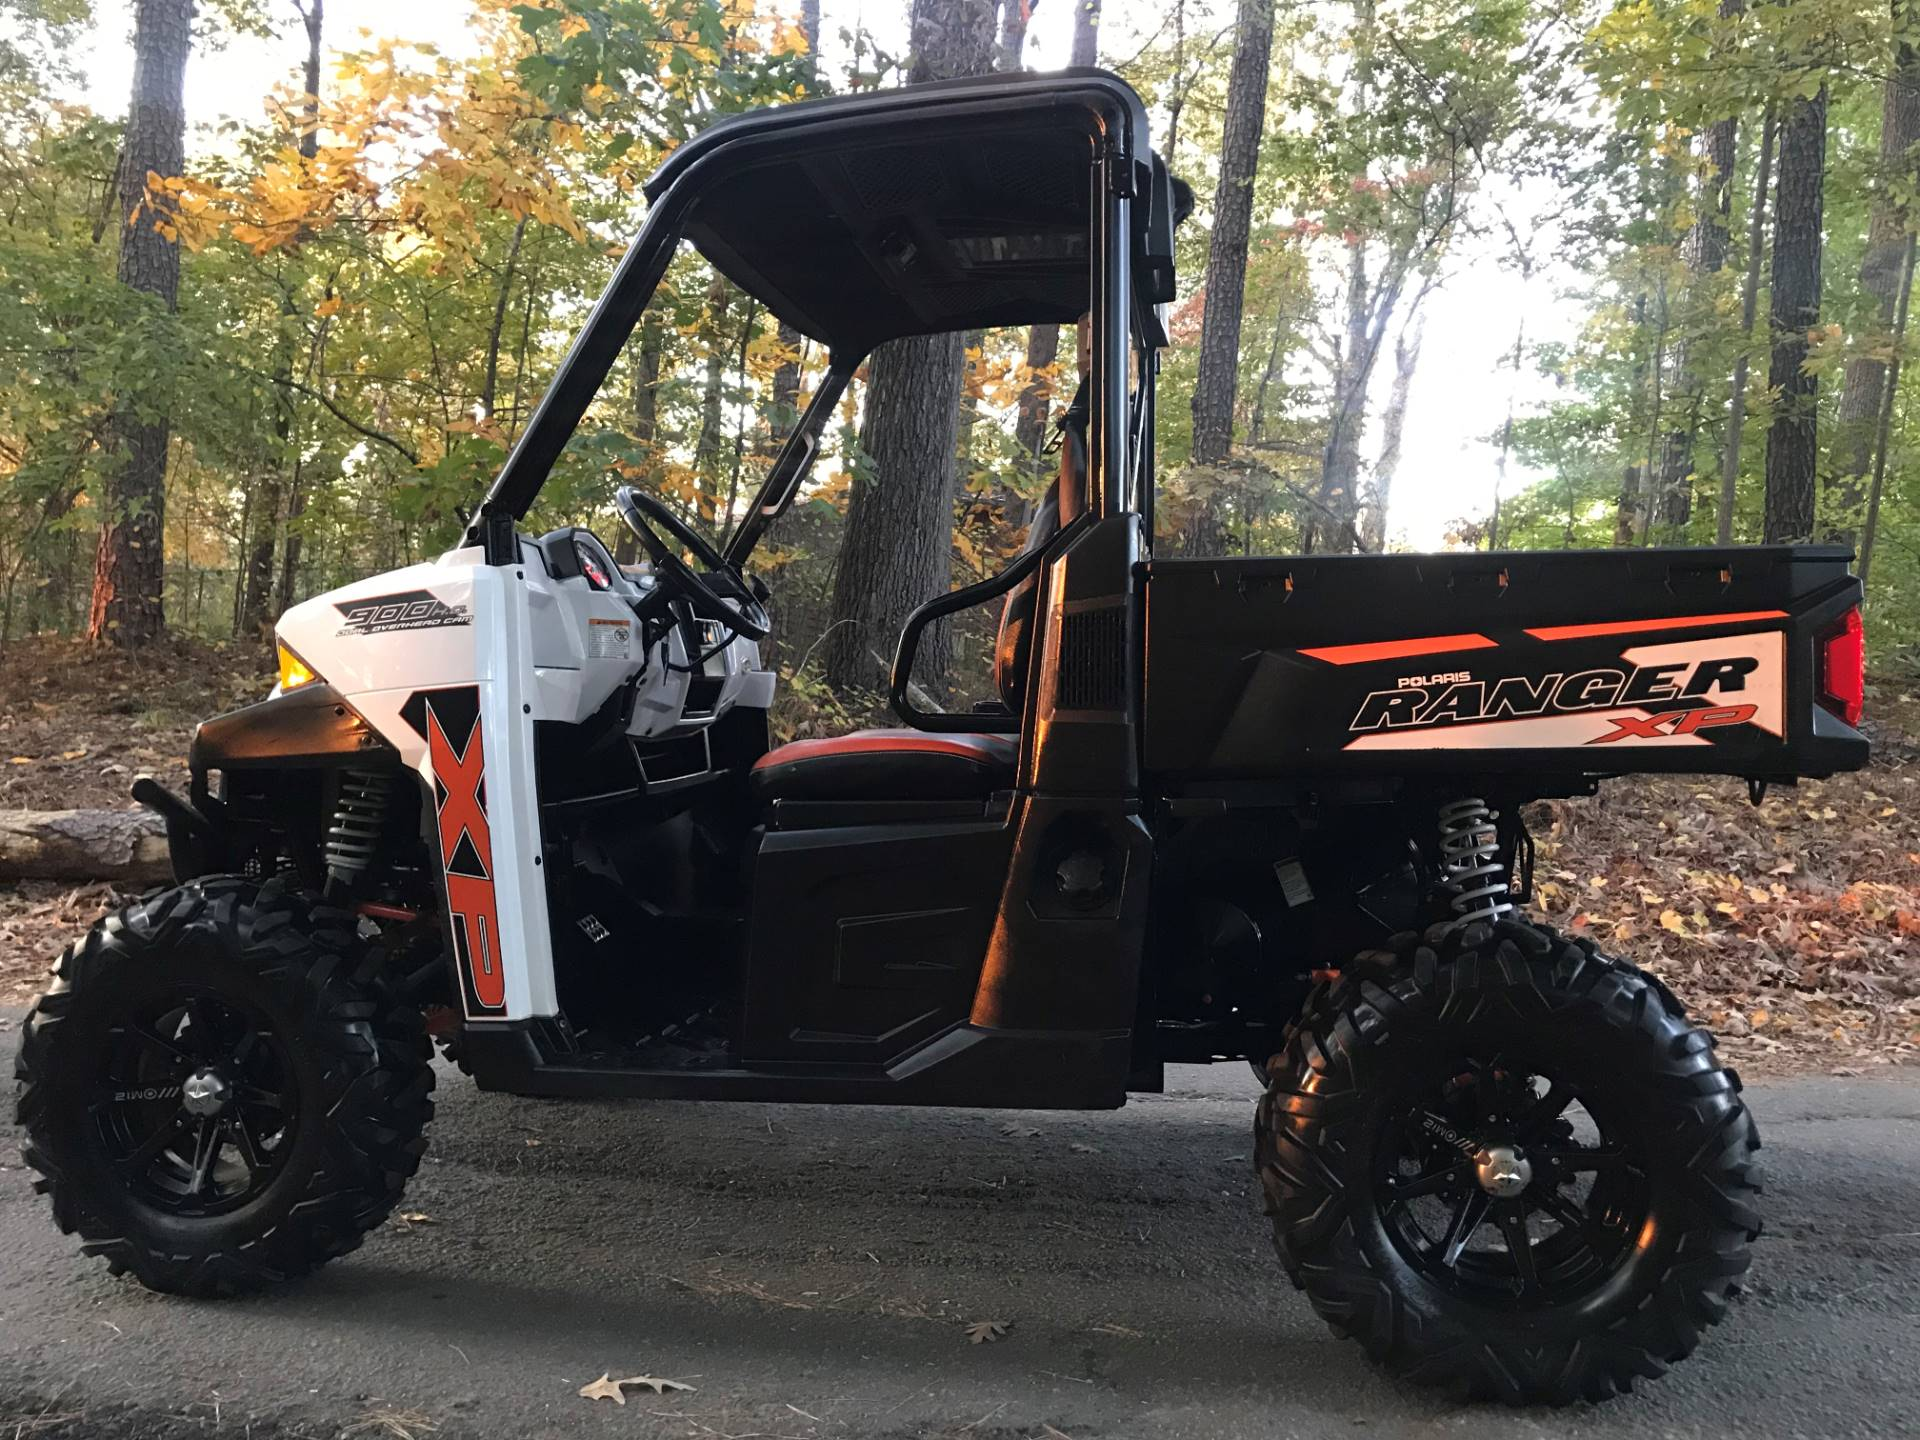 2015 POLARIS RANGER 900 XP EPS in Woodstock, Georgia - Photo 2